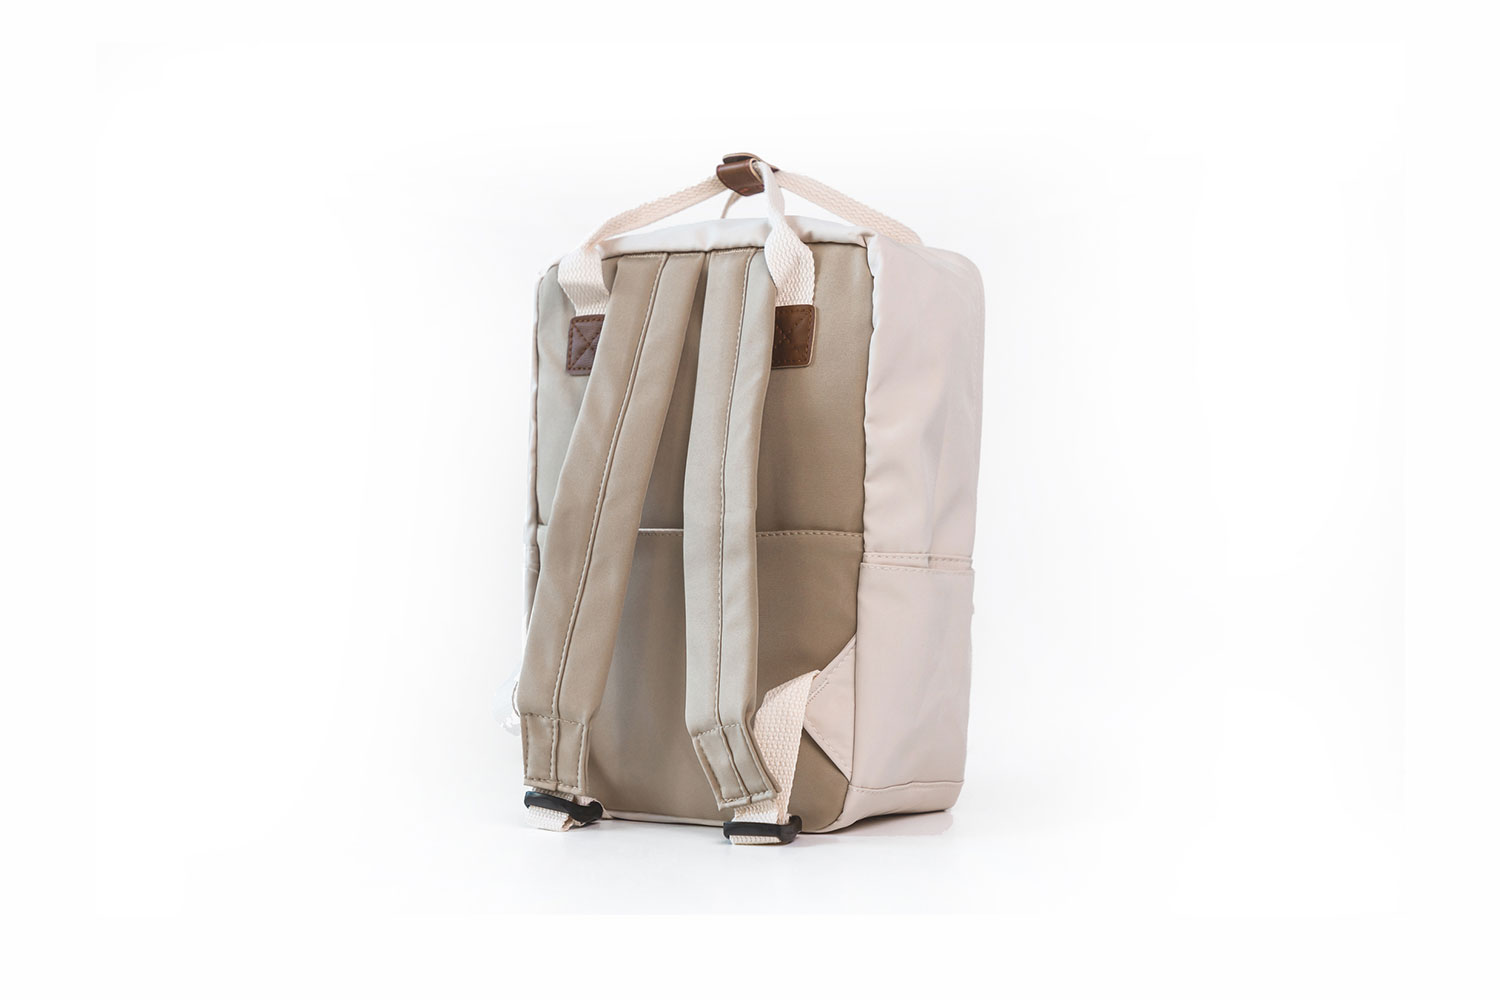 Backpack - classic squares